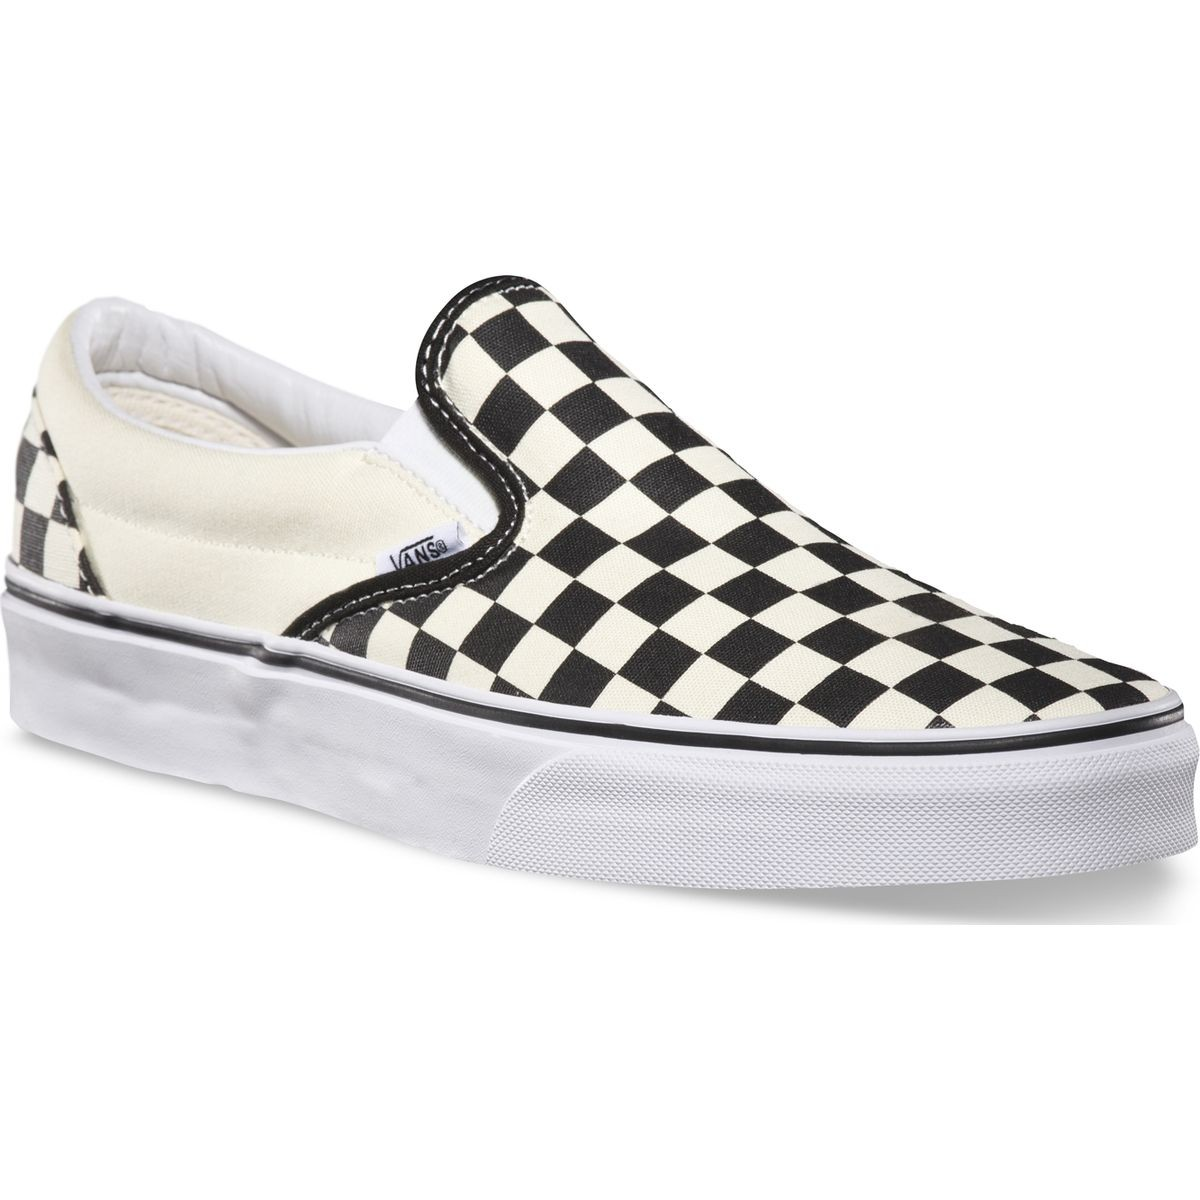 b6cd092725f Vans Classic Slip-On Checkerboard Shoes - Black White - 8.0